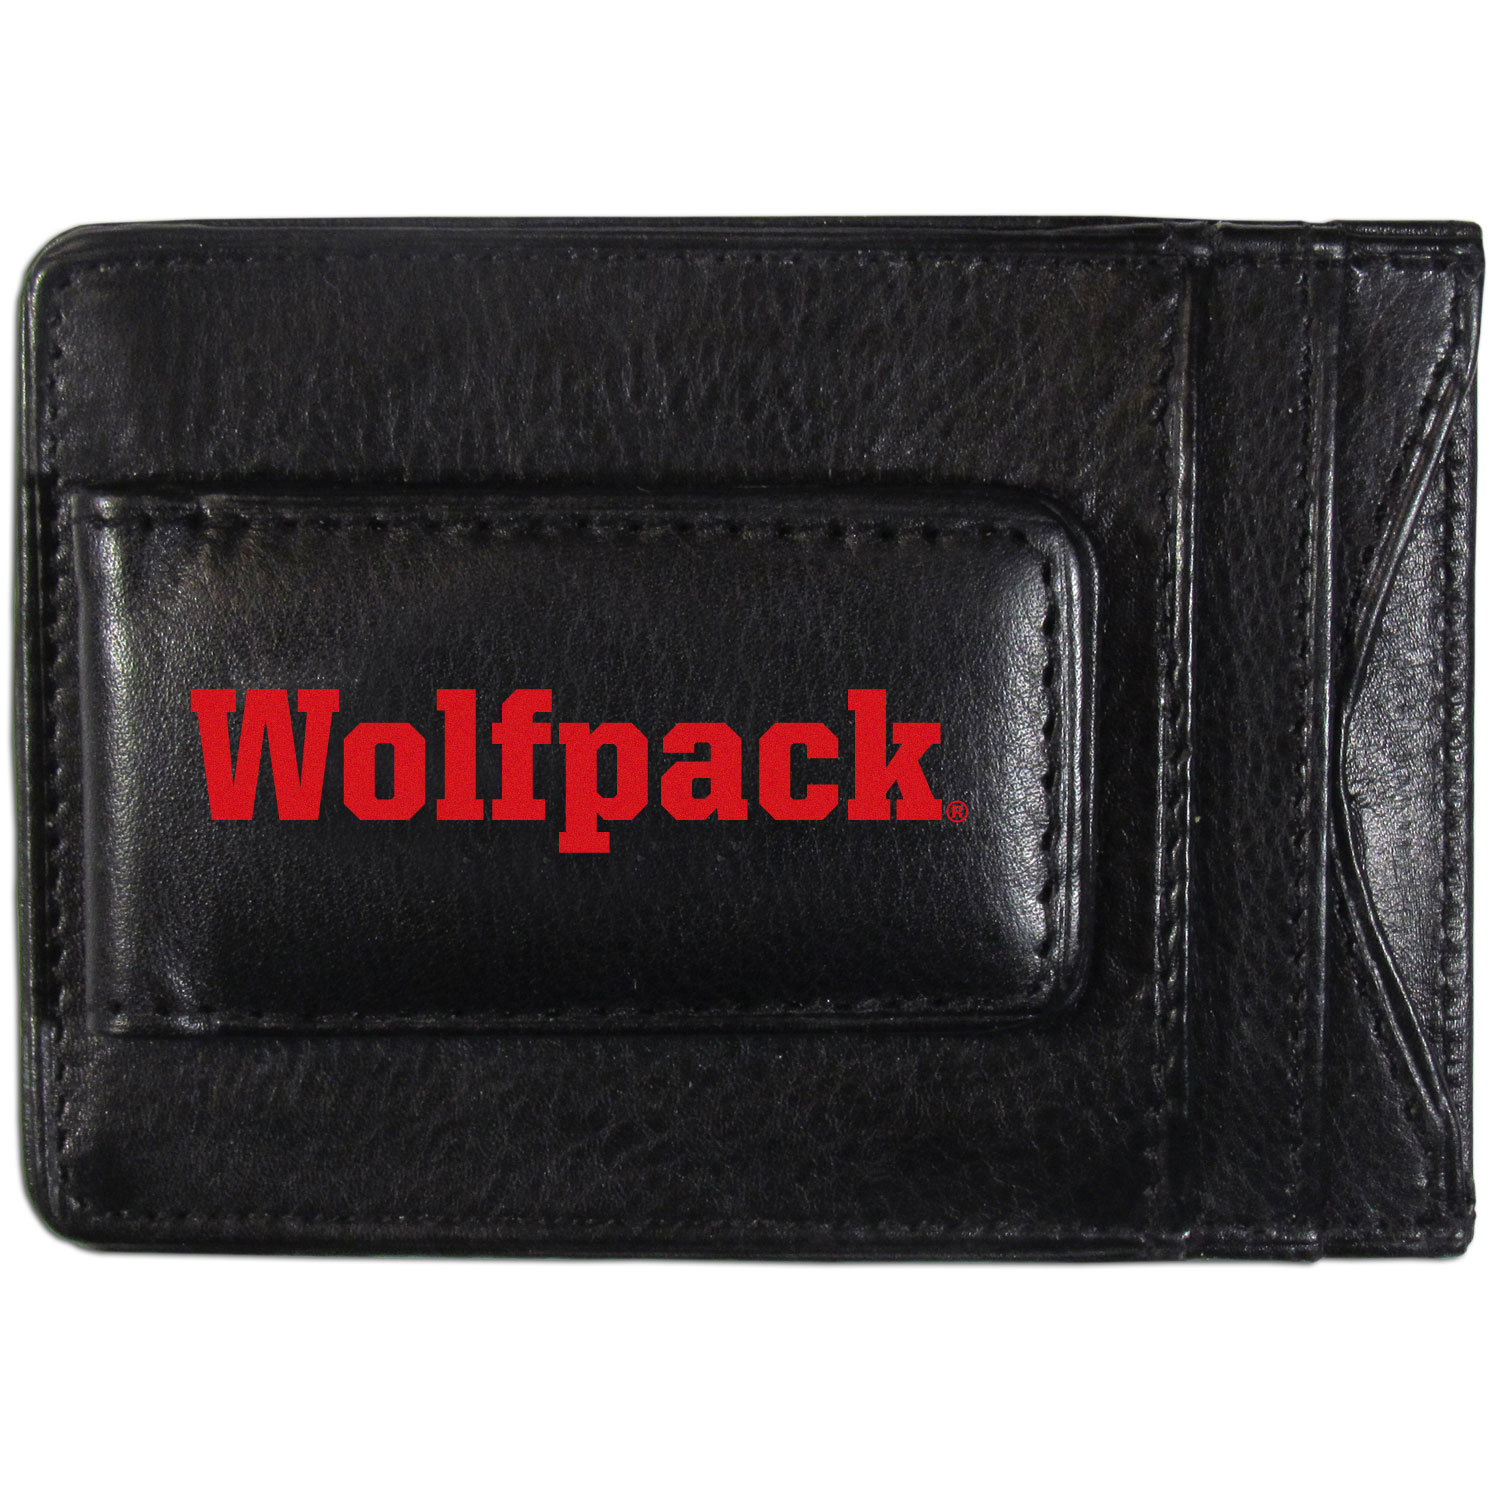 N. Carolina St. Wolfpack Logo Leather Cash and Cardholder - This super slim leather wallet lets you have all the benefits of a money clip while keeping the organization of a wallet. On one side of this front pocket wallet there is a strong, magnetic money clip to keep your cash easily accessible and the?N. Carolina St. Wolfpack team logo on the front. The versatile men's accessory is a perfect addition to your fan apparel.